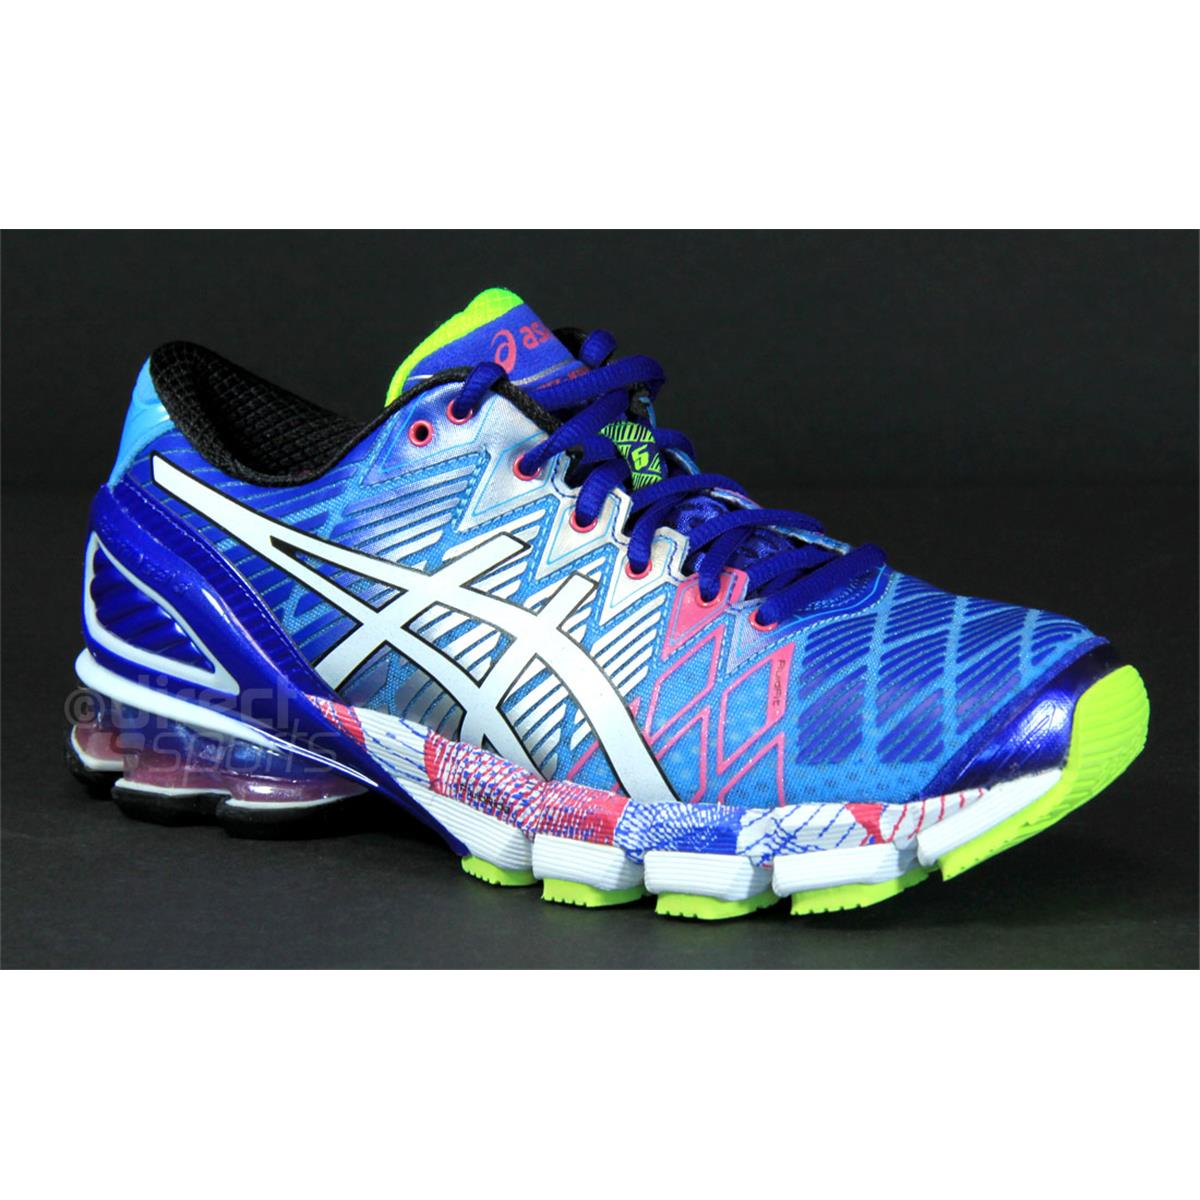 brand new 4ccc2 5e803 ... running shoe 213776 periwinkle flash yellow mint 01749 74dfa 50% off  mens asics gel kinsei 5 pink . d4a13 12b95 ...